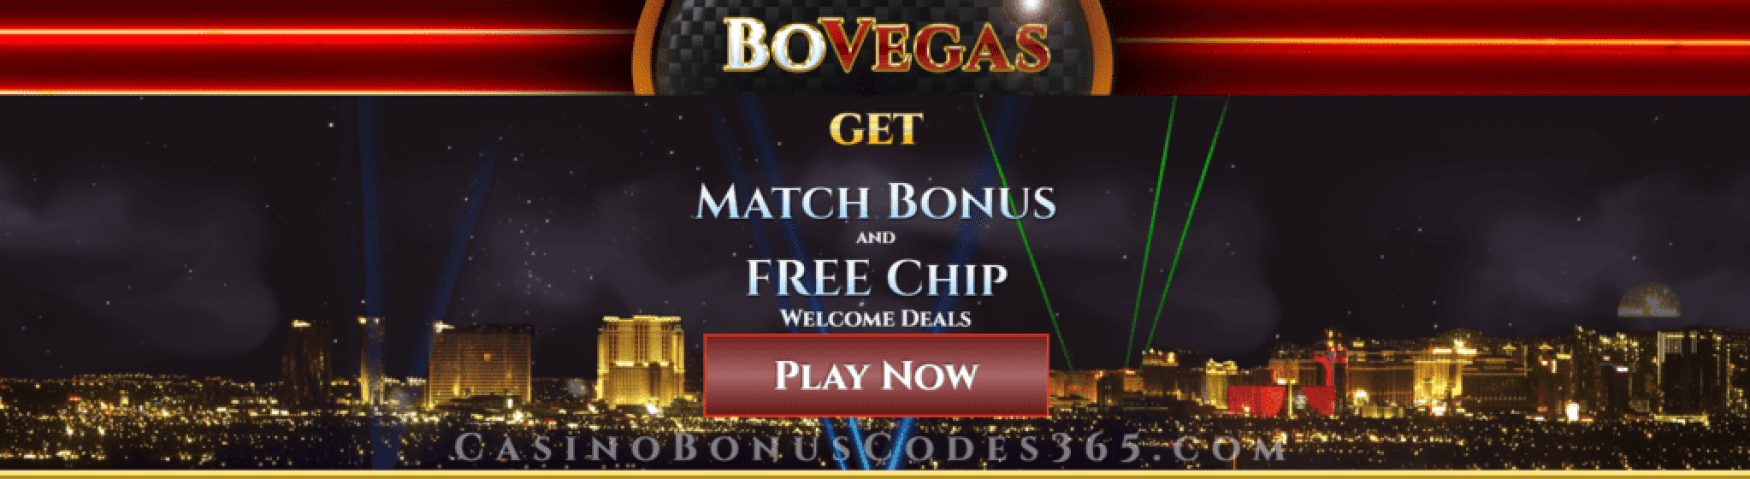 BoVegas Casino RTG US Friendly Daily Match Bonus and No Deposit FREE Chip